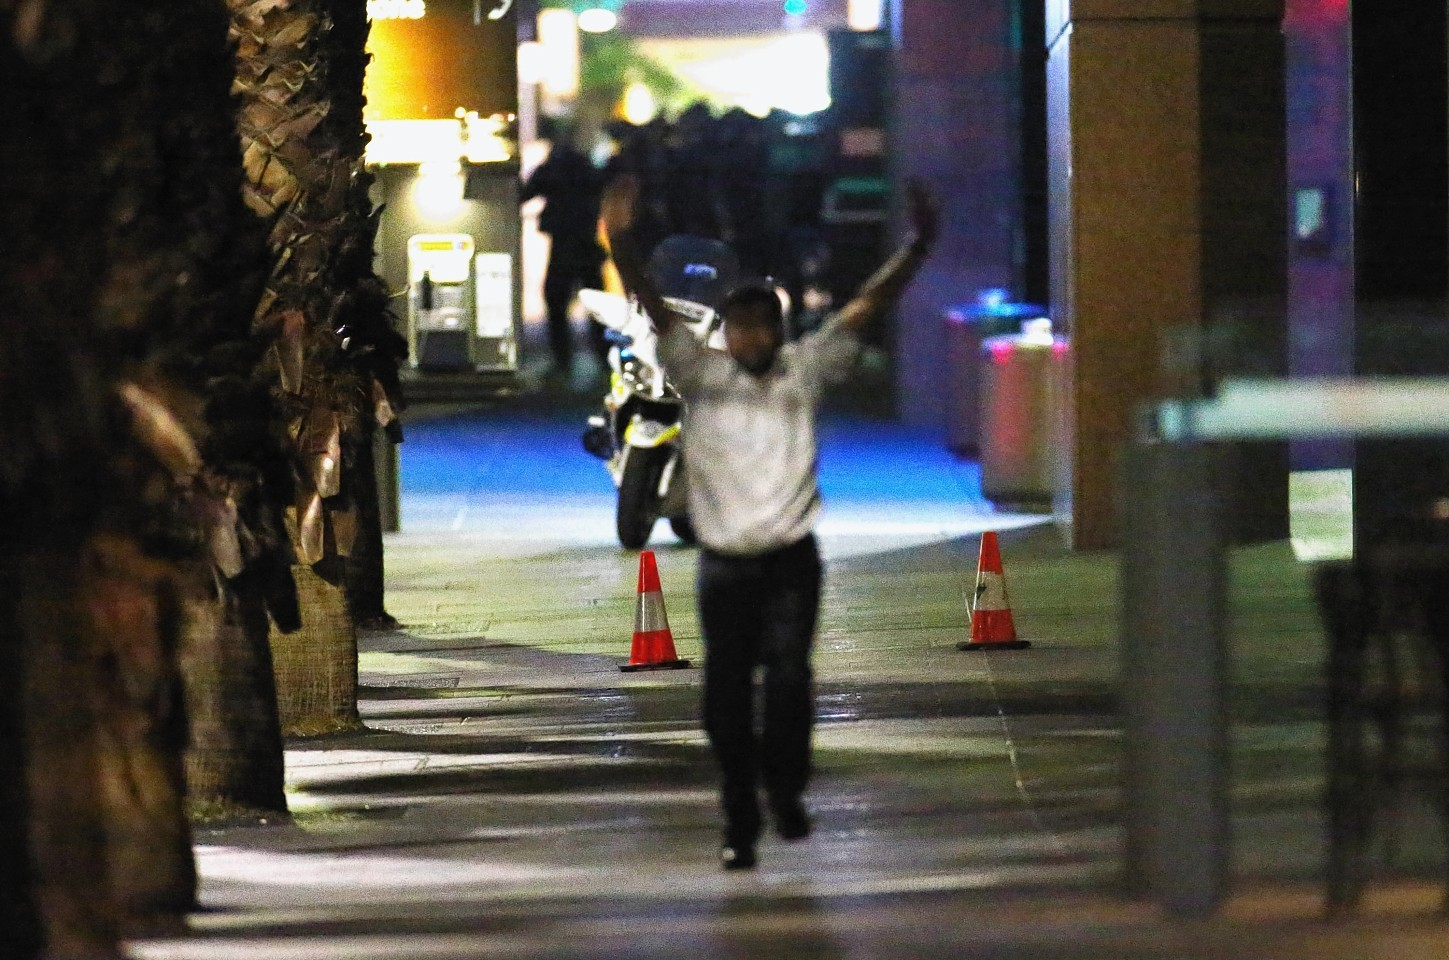 Police bring an end to the Sydney siege